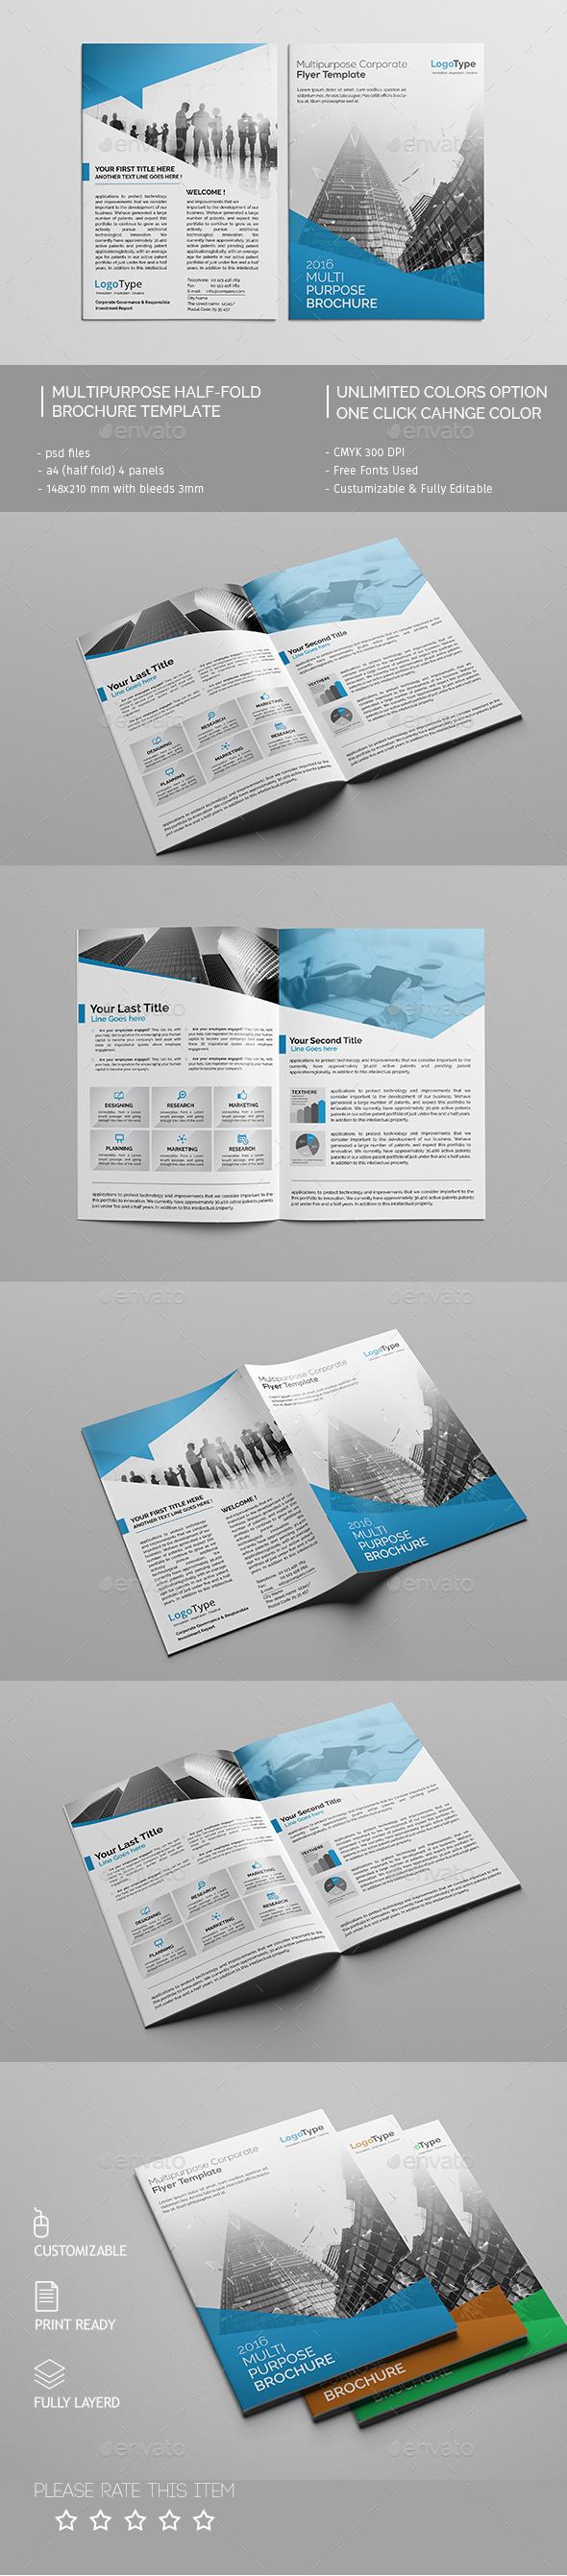 Corporate Bi-fold Brochure Template 02 - Corporate Brochures